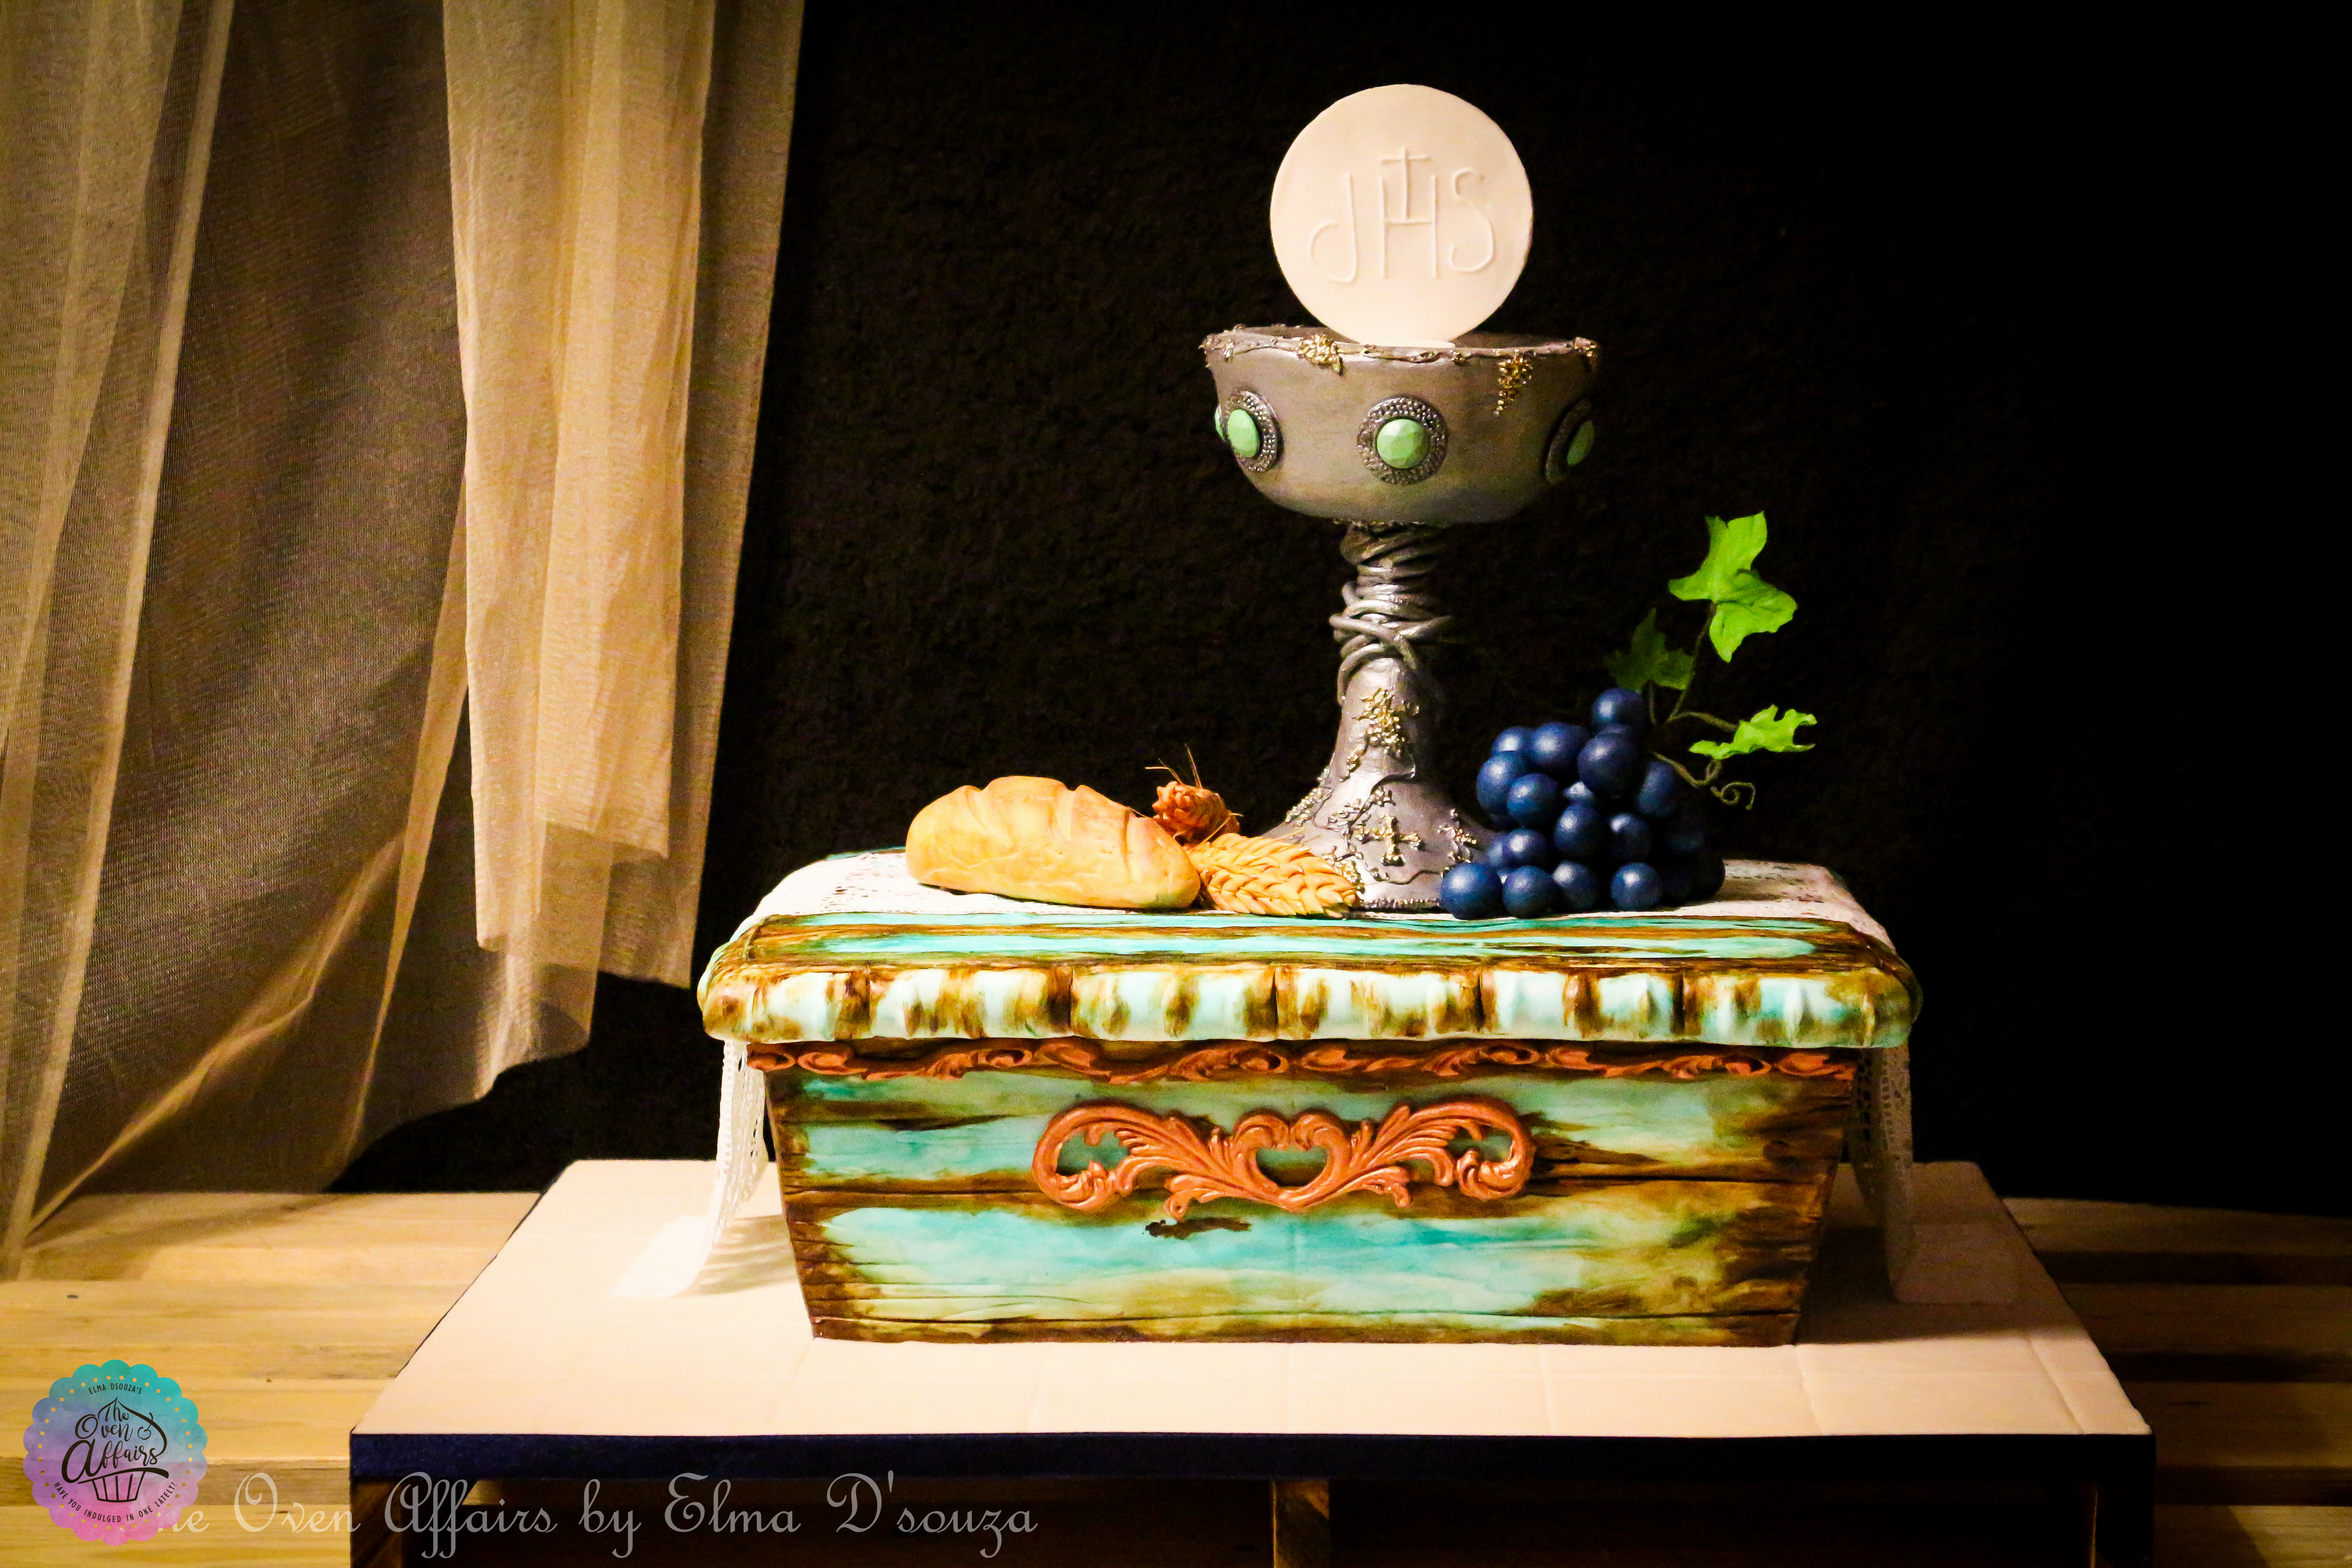 Eucharist holy communion wine and grapes cake